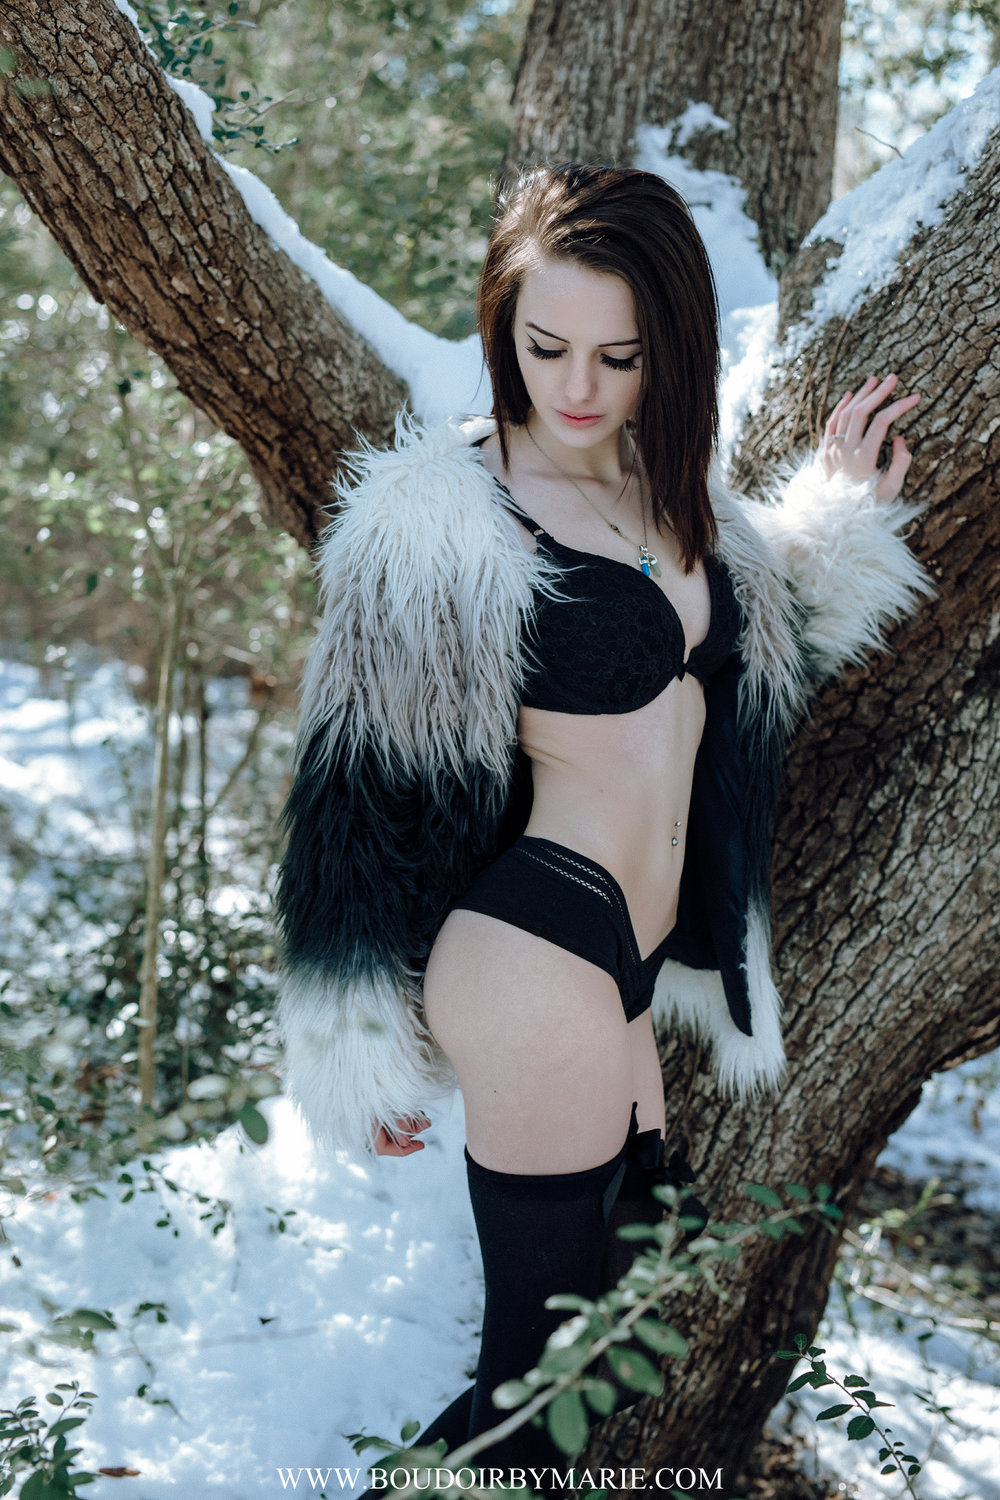 Beautiful brunette girl outside in snow boudoir photograph